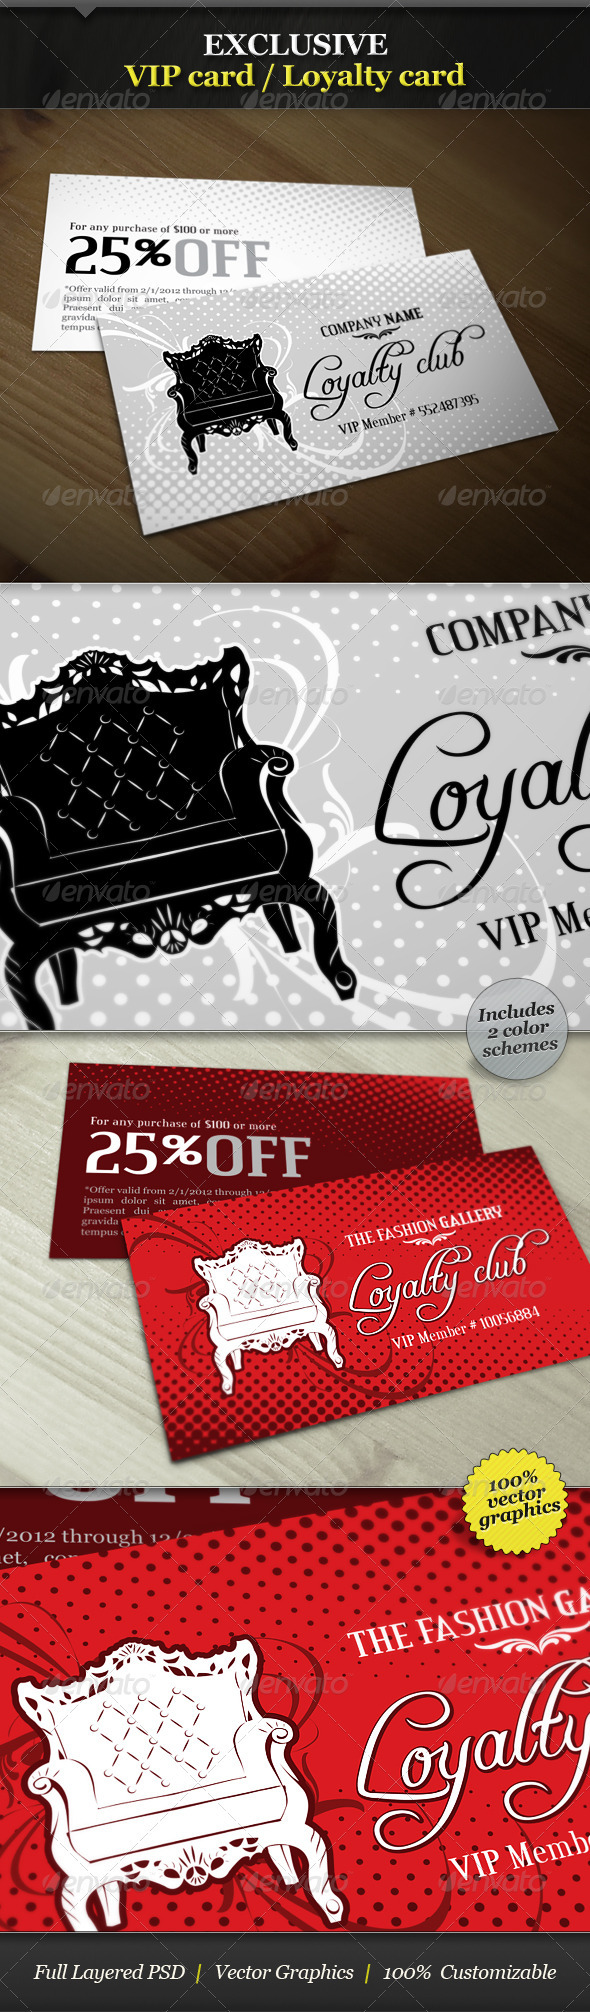 GraphicRiver Exclusive VIP Card Loyalty Card 1693693